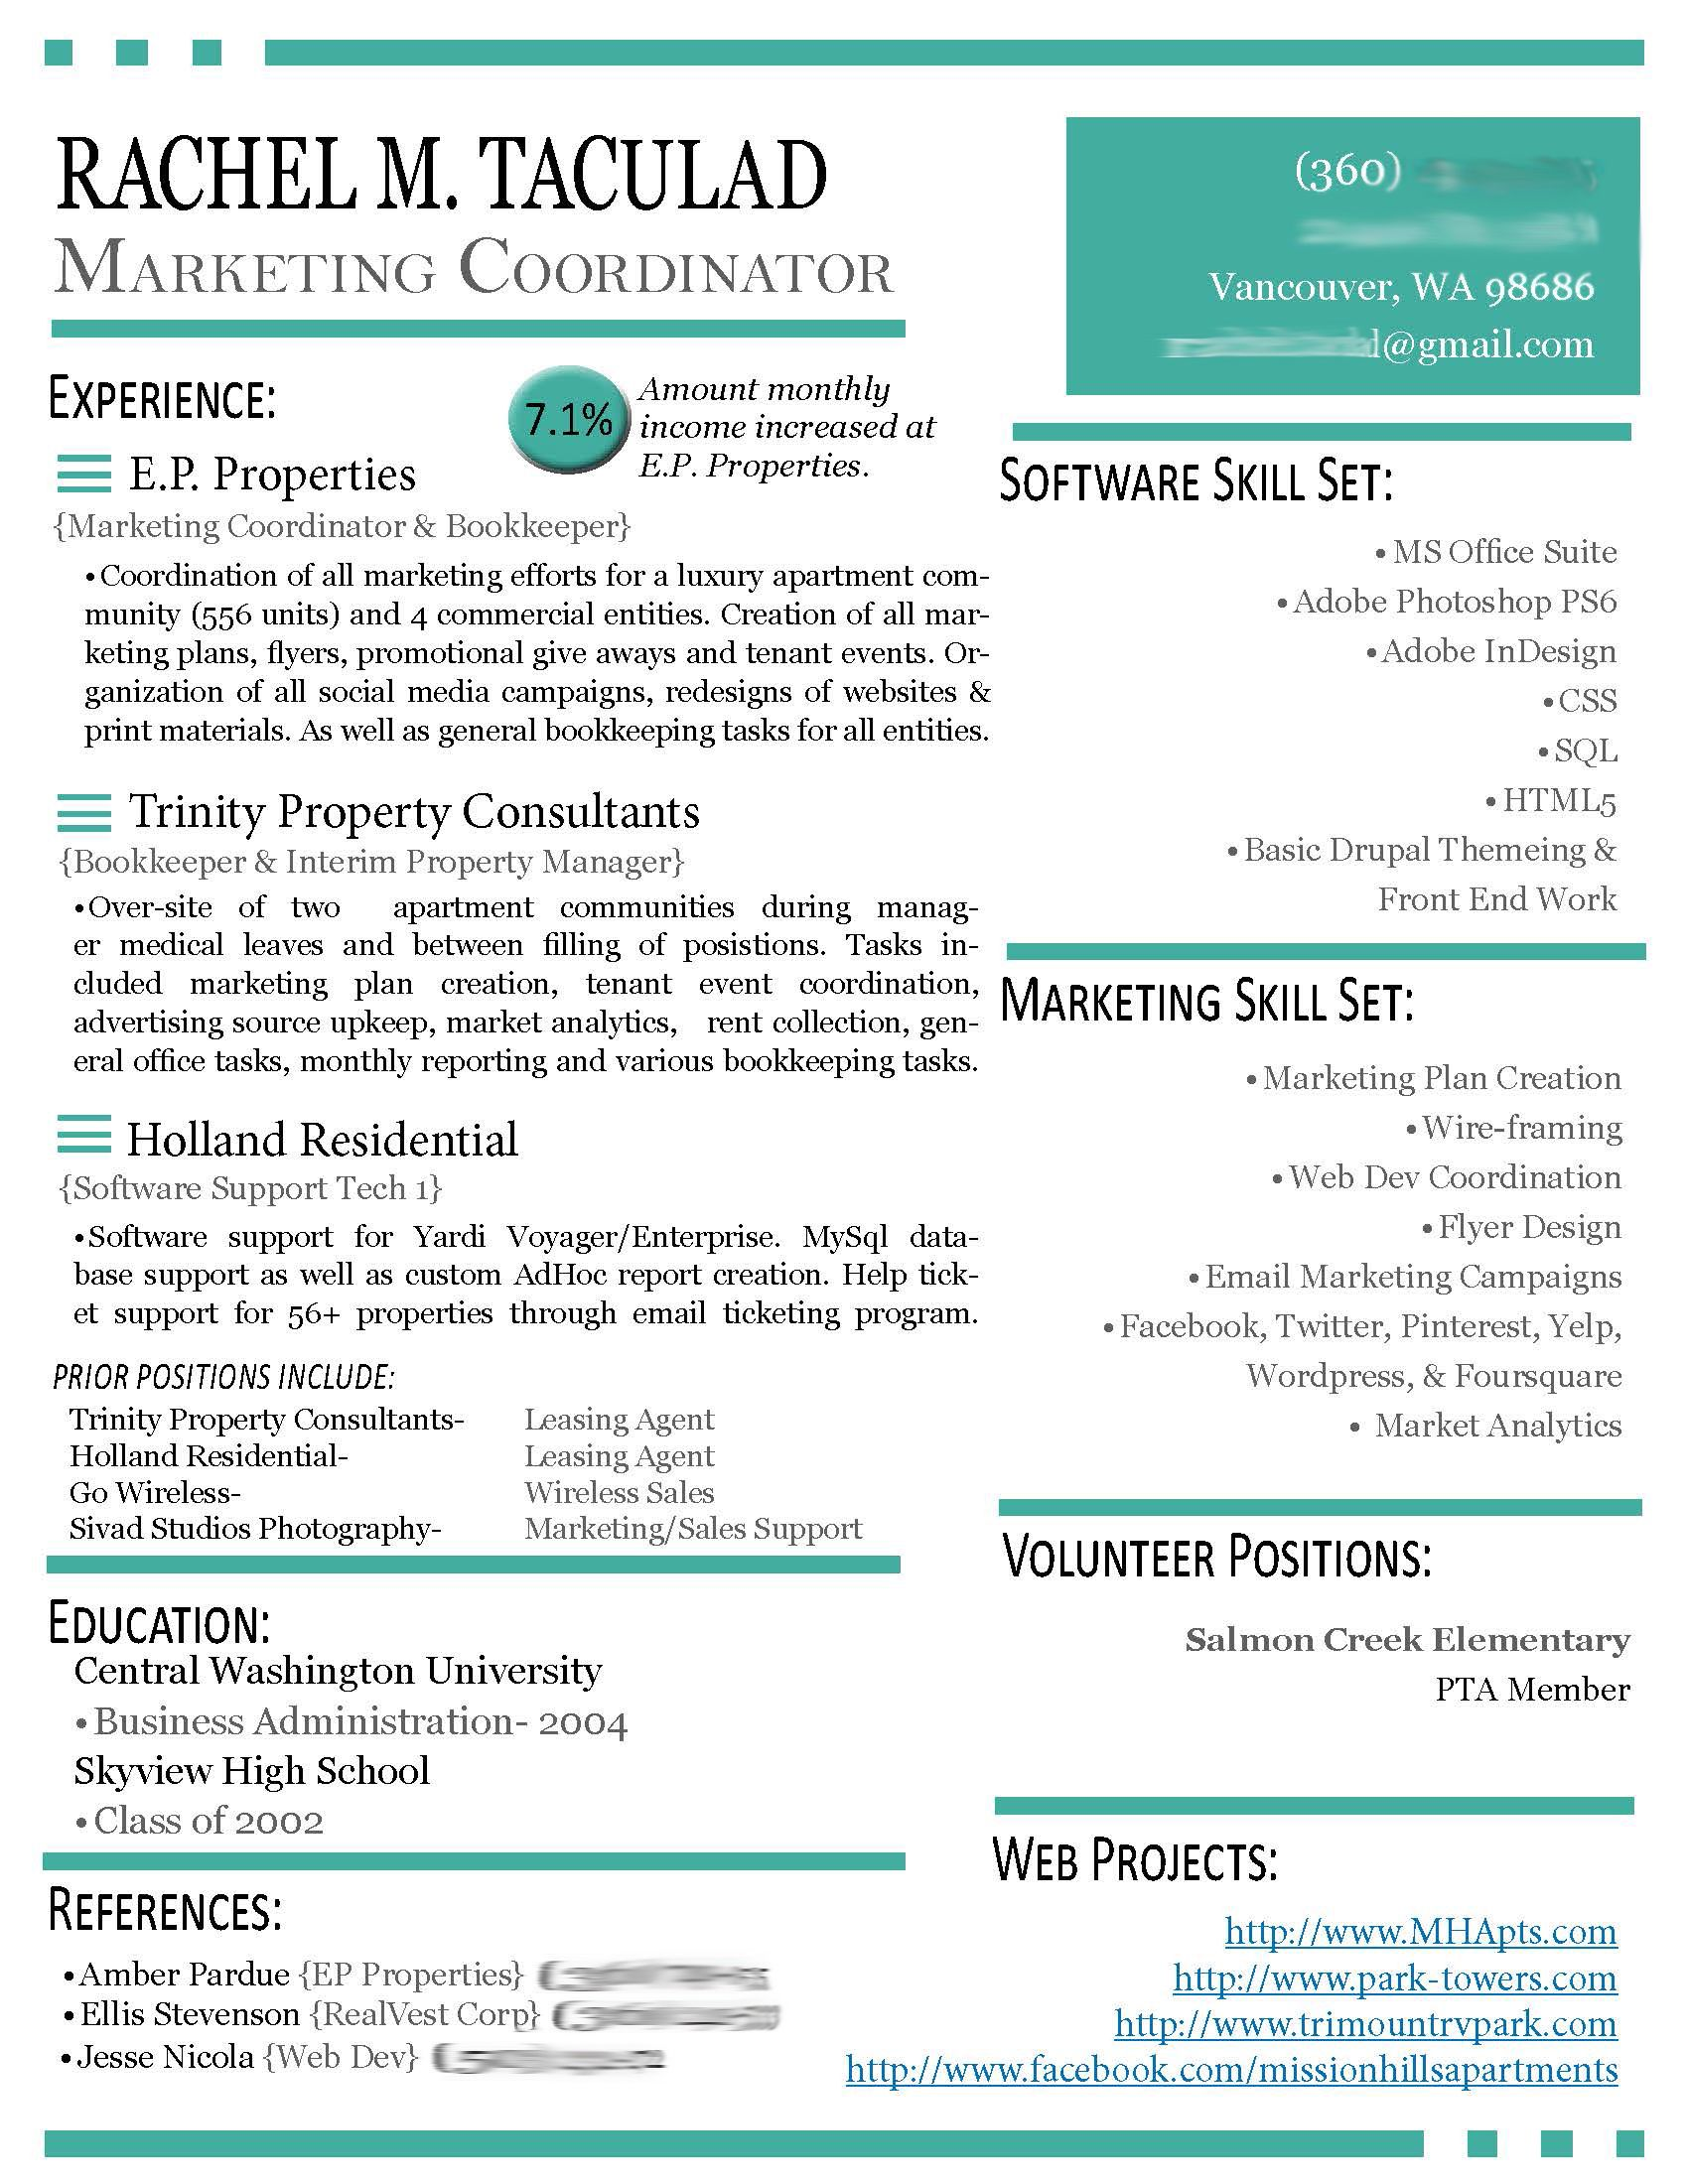 Opposenewapstandardsus  Sweet  Images About Work Stuff On Pinterest  Resume Professional  With Likable  Images About Work Stuff On Pinterest  Resume Professional Resume Template And Resume Templates With Cool Objective For Cna Resume Also Home Health Care Resume In Addition Gaps In Resume And Example Of Student Resume As Well As Templates Resume Additionally Free Resume Format Download From Pinterestcom With Opposenewapstandardsus  Likable  Images About Work Stuff On Pinterest  Resume Professional  With Cool  Images About Work Stuff On Pinterest  Resume Professional Resume Template And Resume Templates And Sweet Objective For Cna Resume Also Home Health Care Resume In Addition Gaps In Resume From Pinterestcom